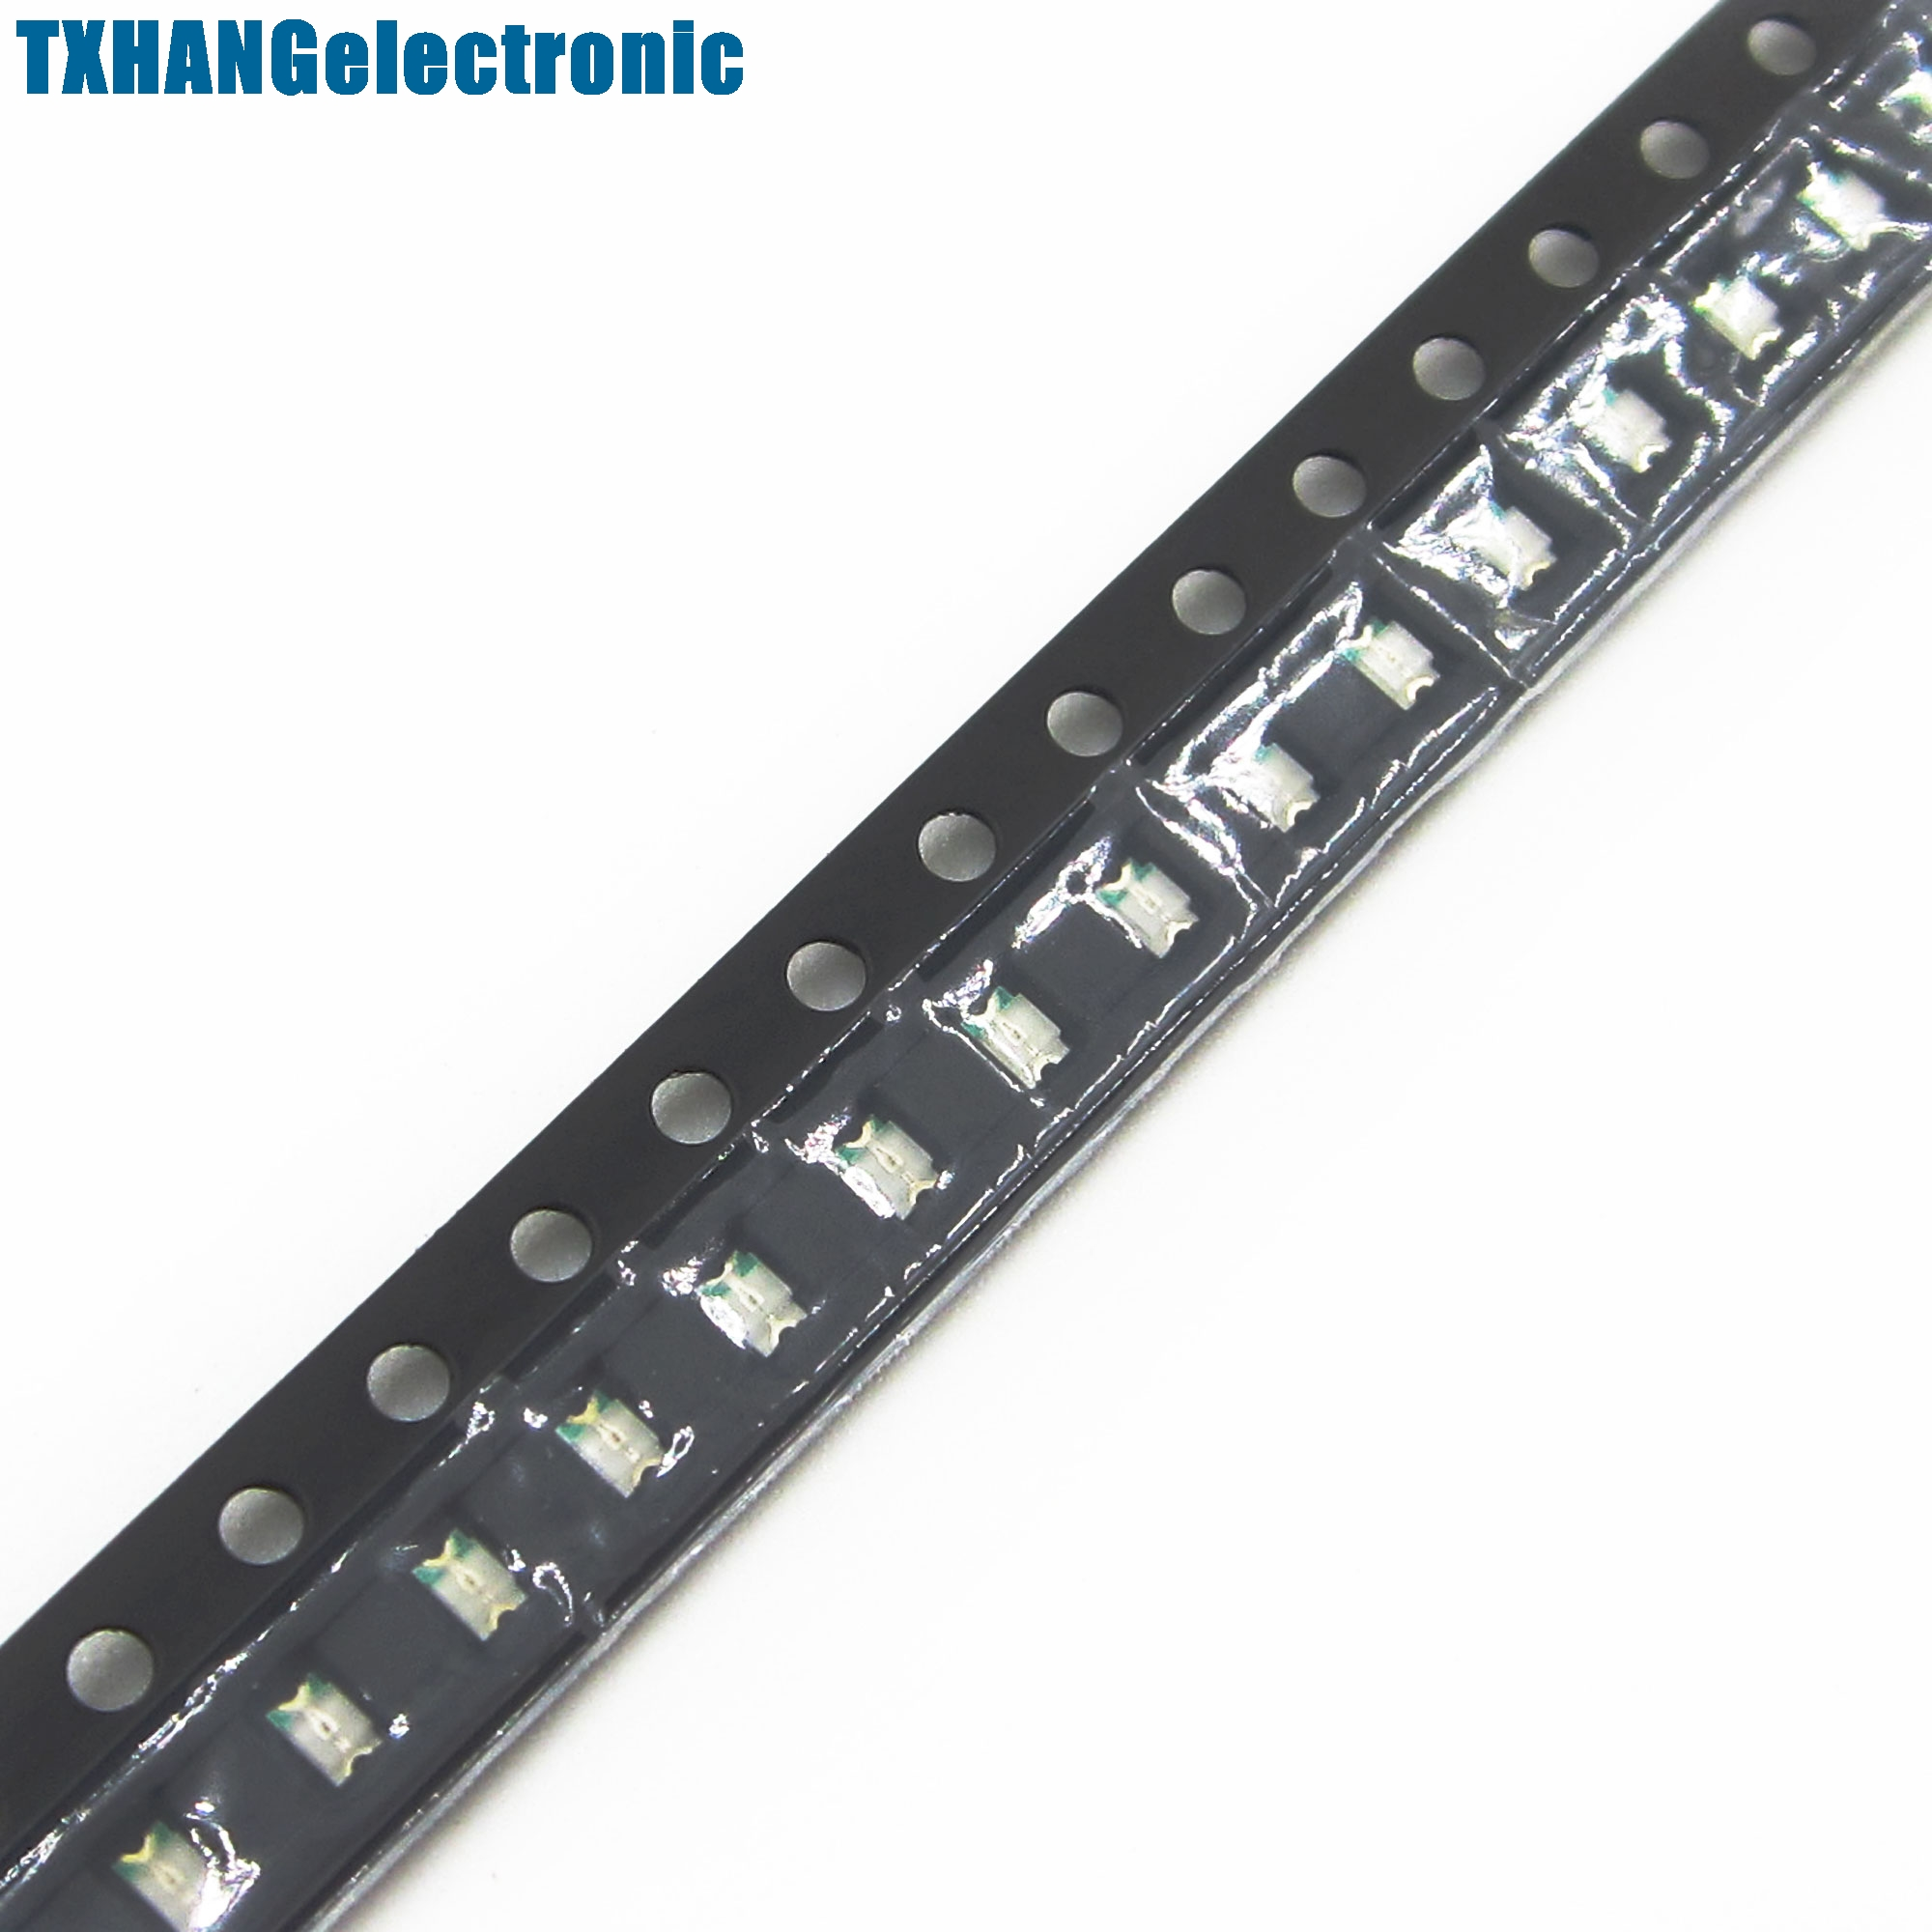 100pcs SMD SMT 0805 Green Super bright GREEN LED lamp Bulb NEW